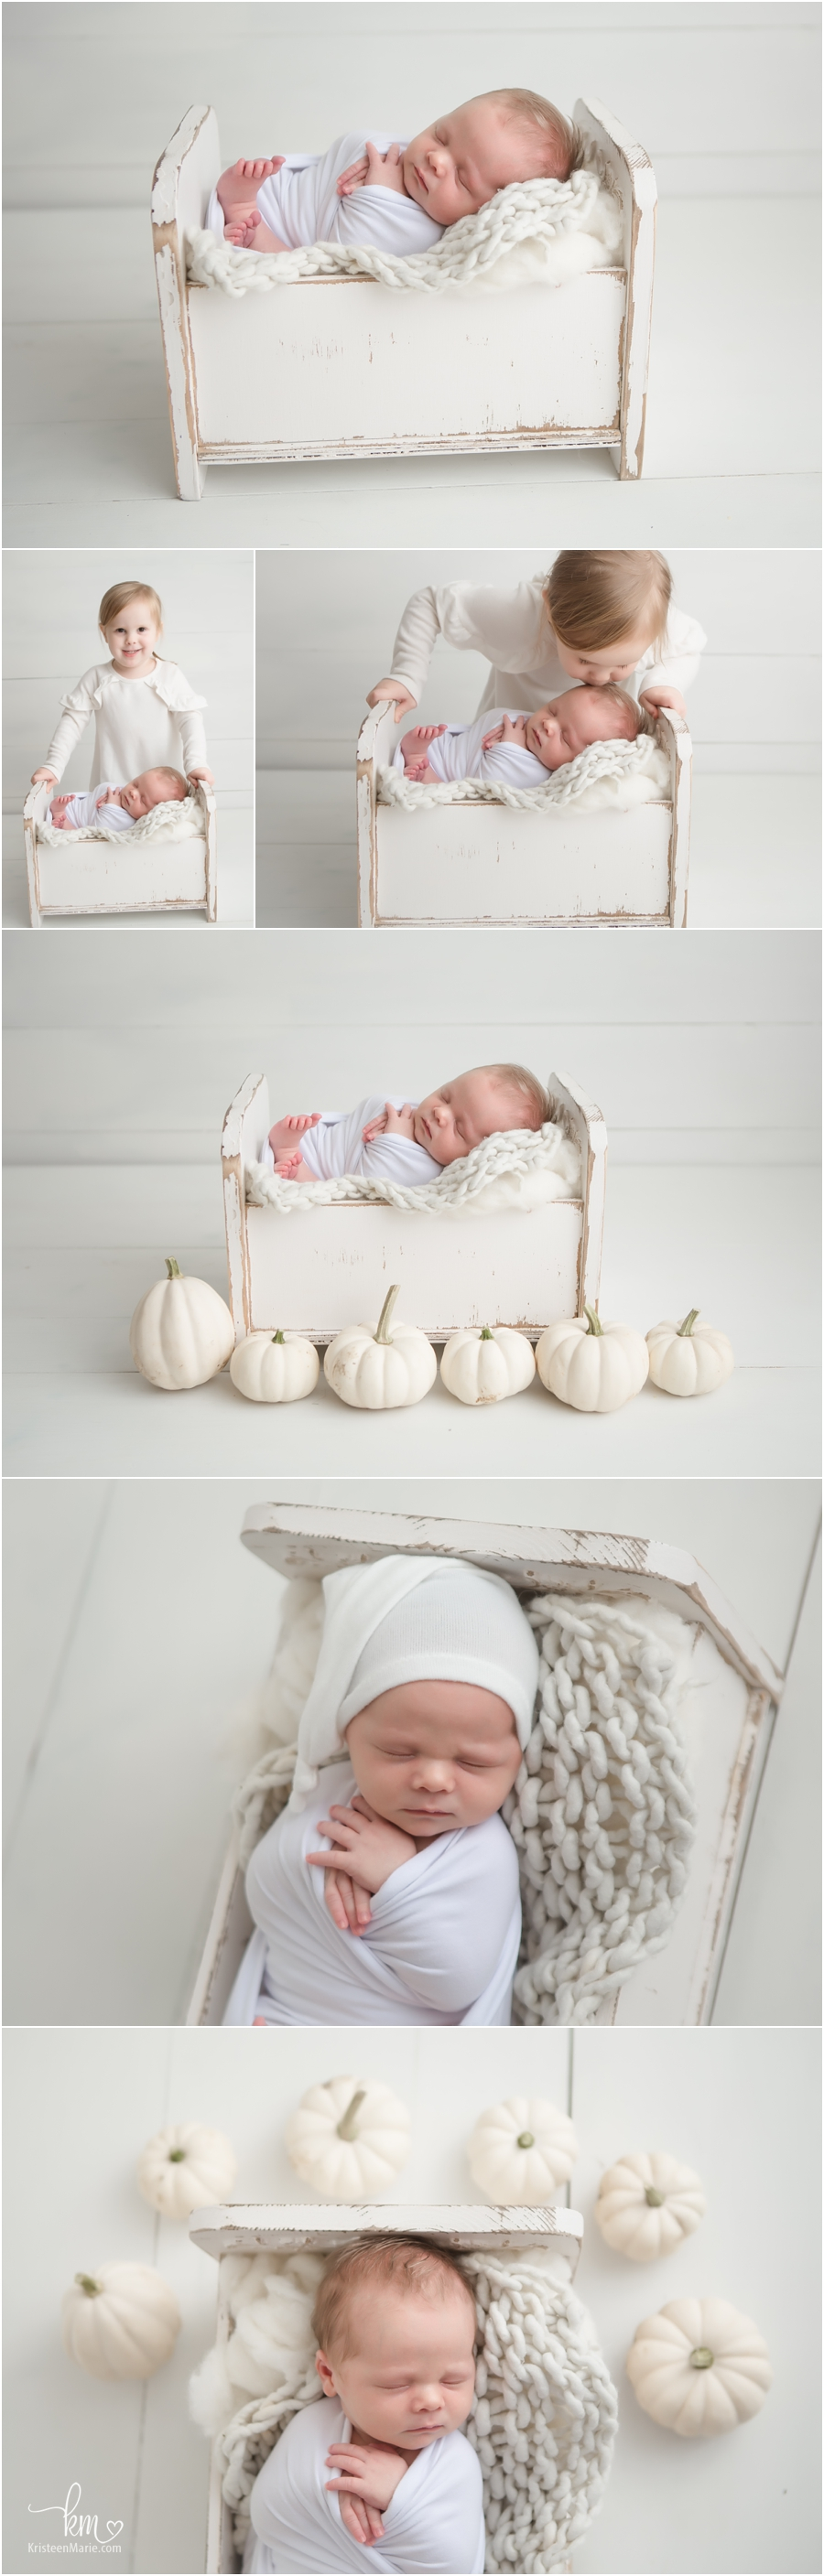 white and cream newborn pictures - siblings and halloween - neutral colors - so sweet!